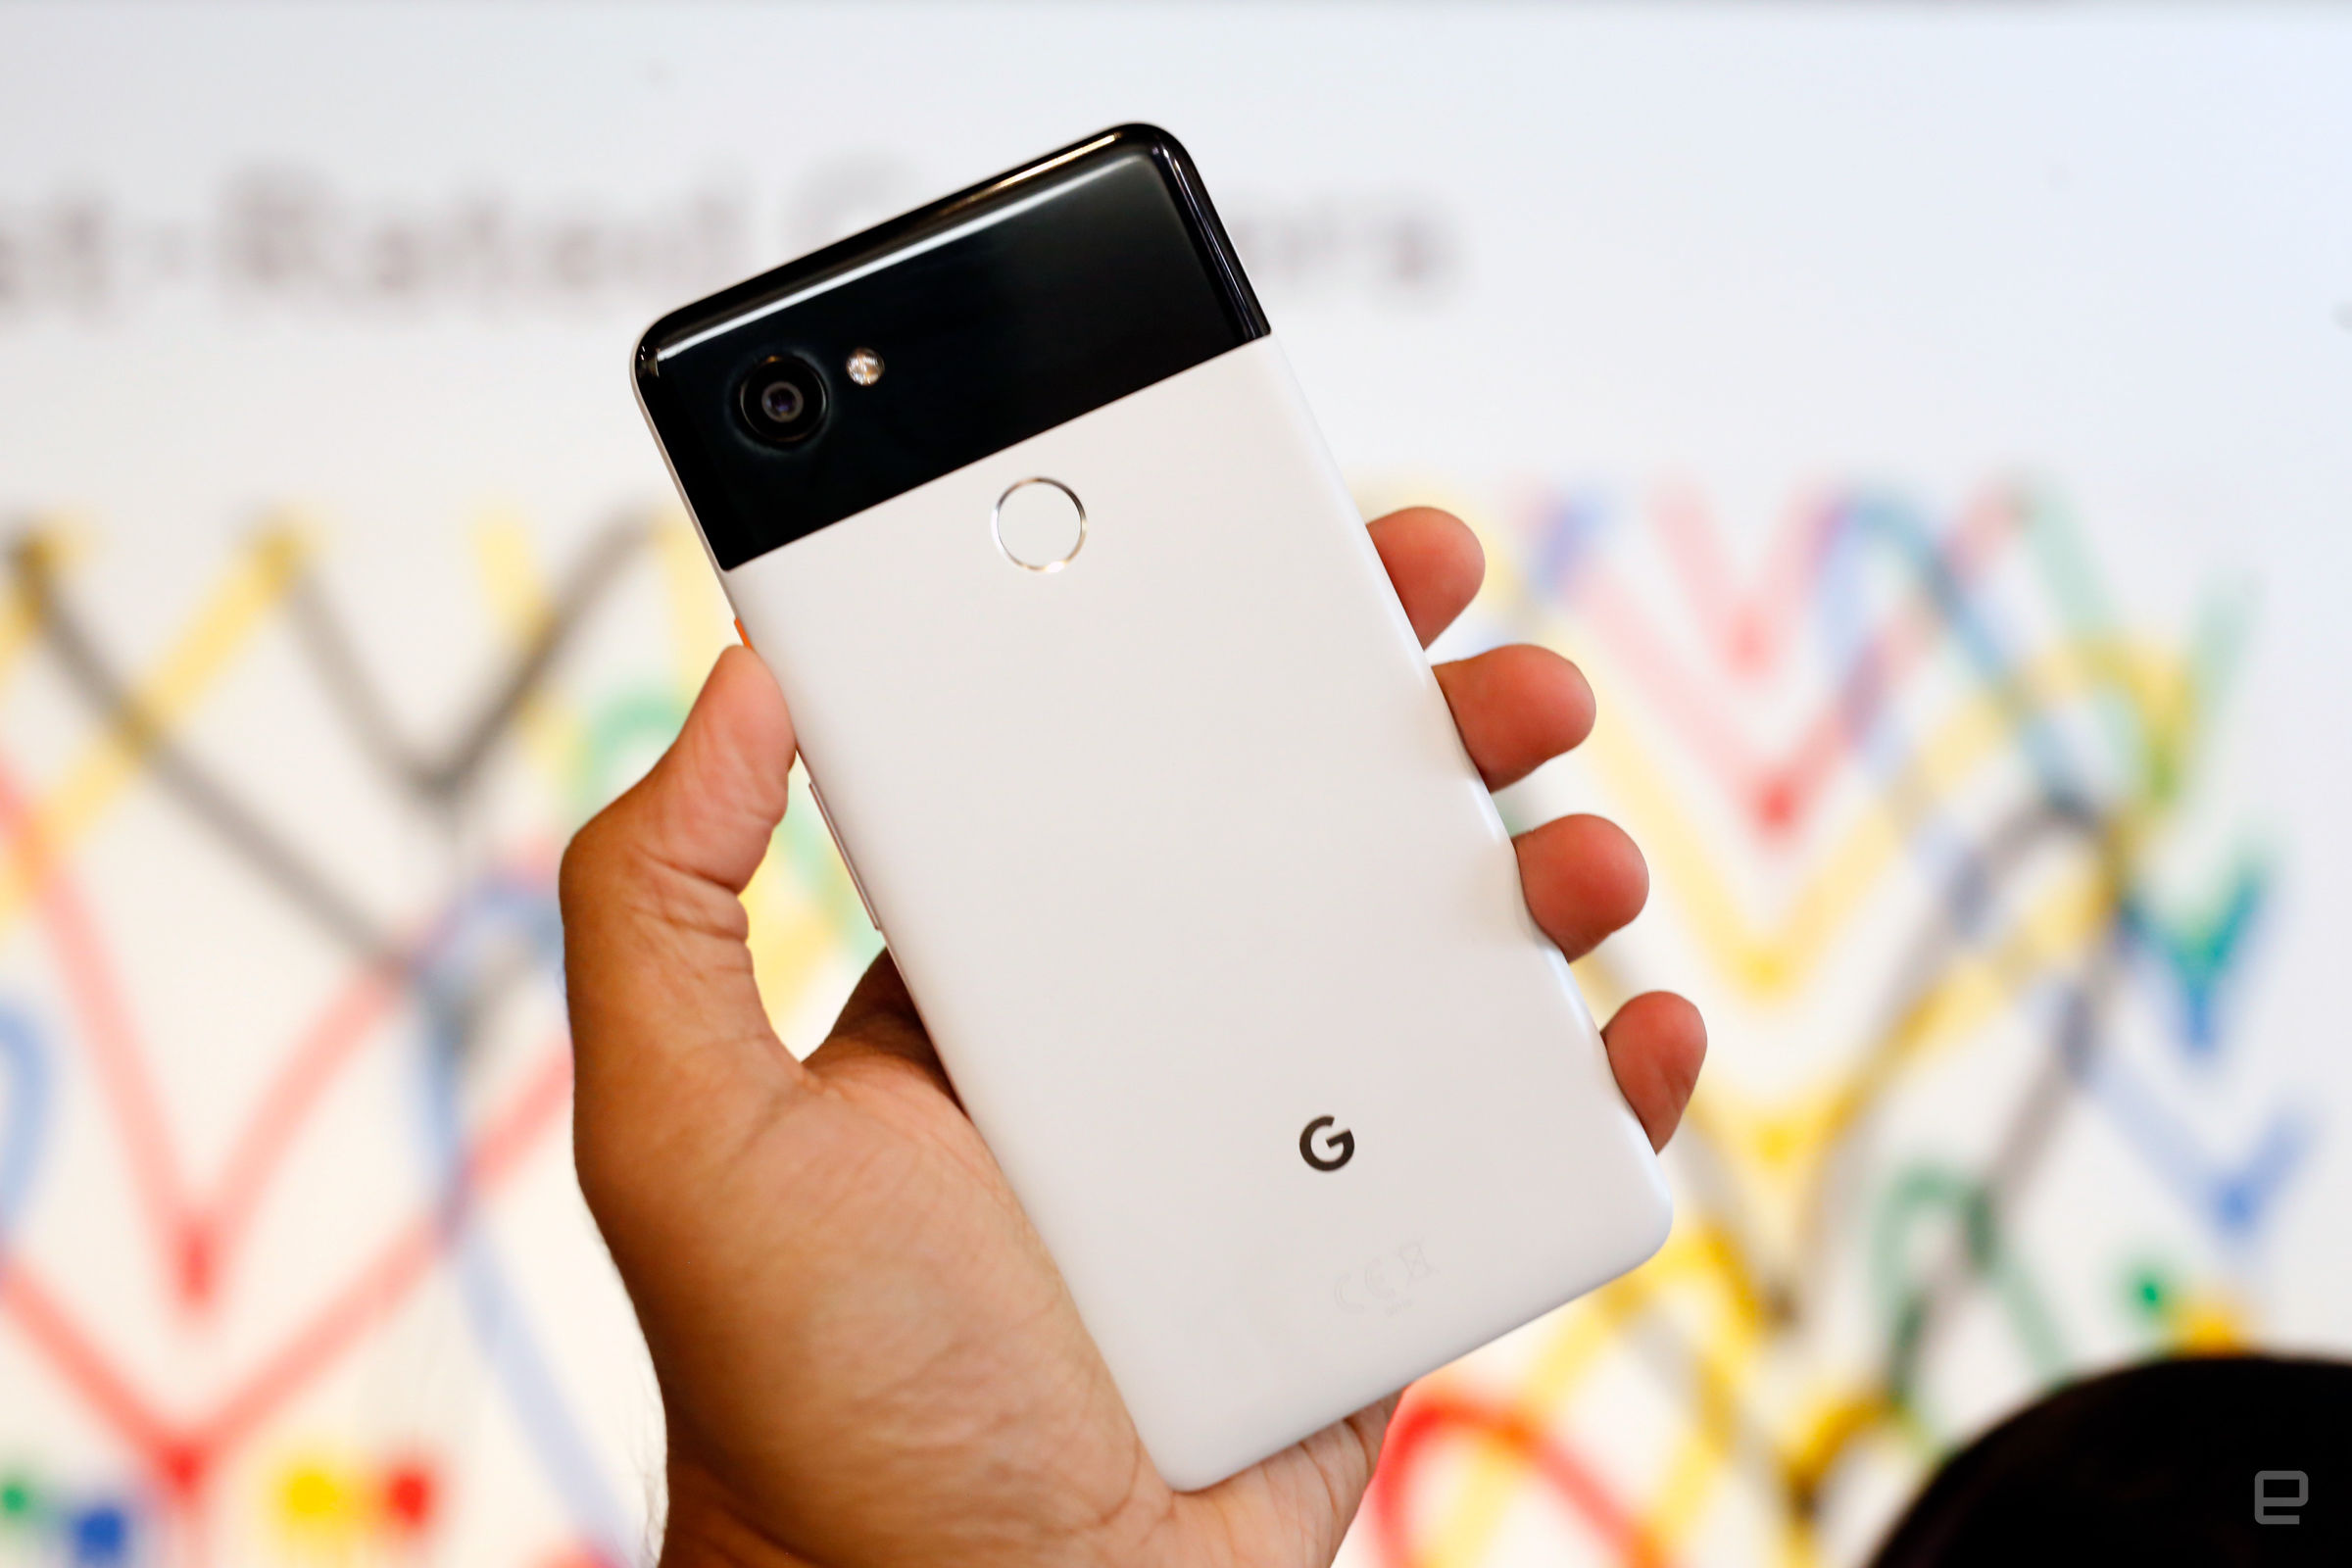 Hands-on with Google Pixel 2 and Google Pixel 2 XL.